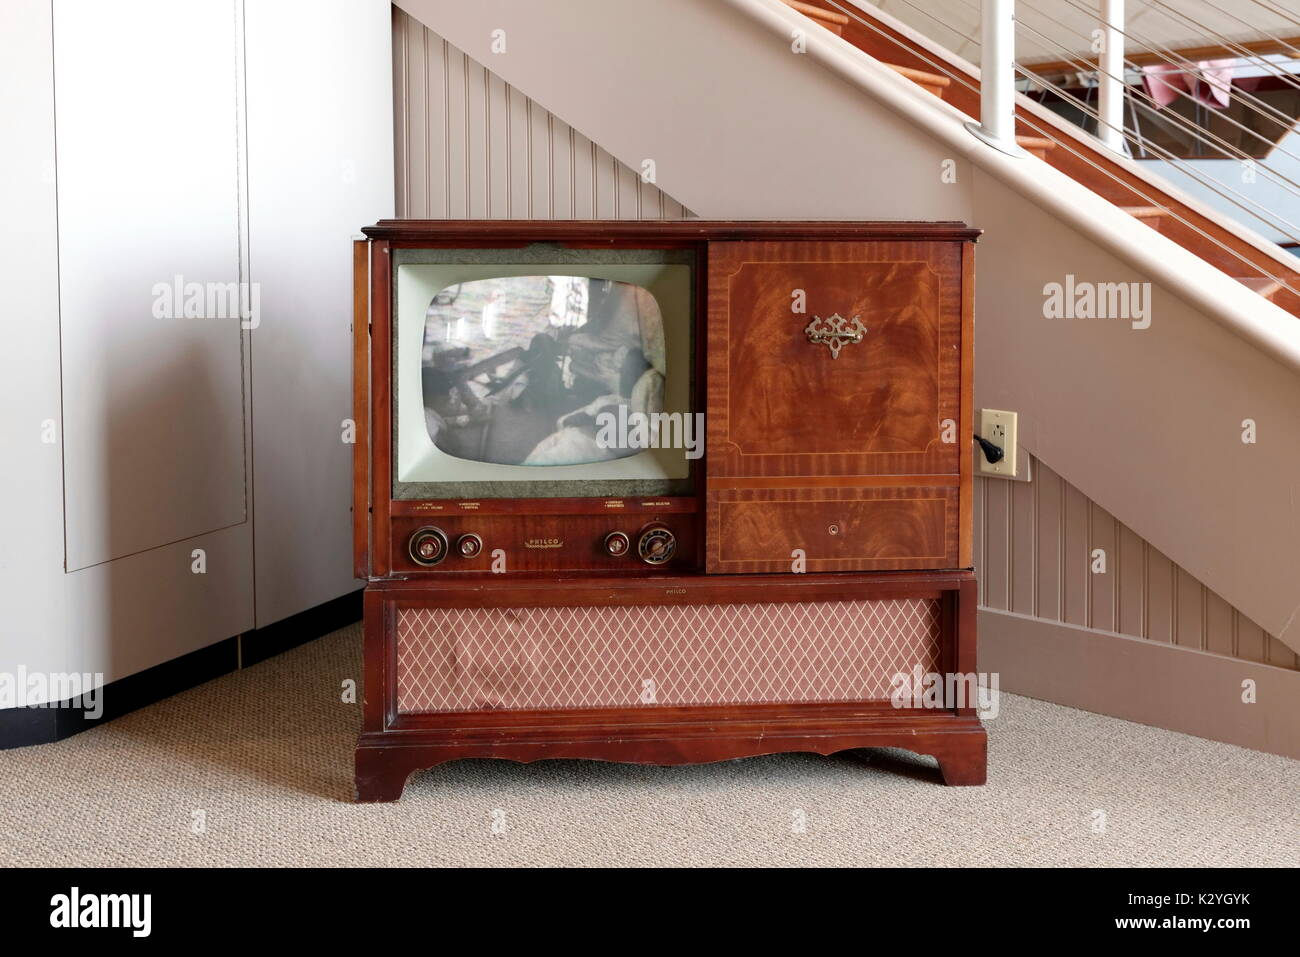 Antique Philco television in wooden console. - Stock Image